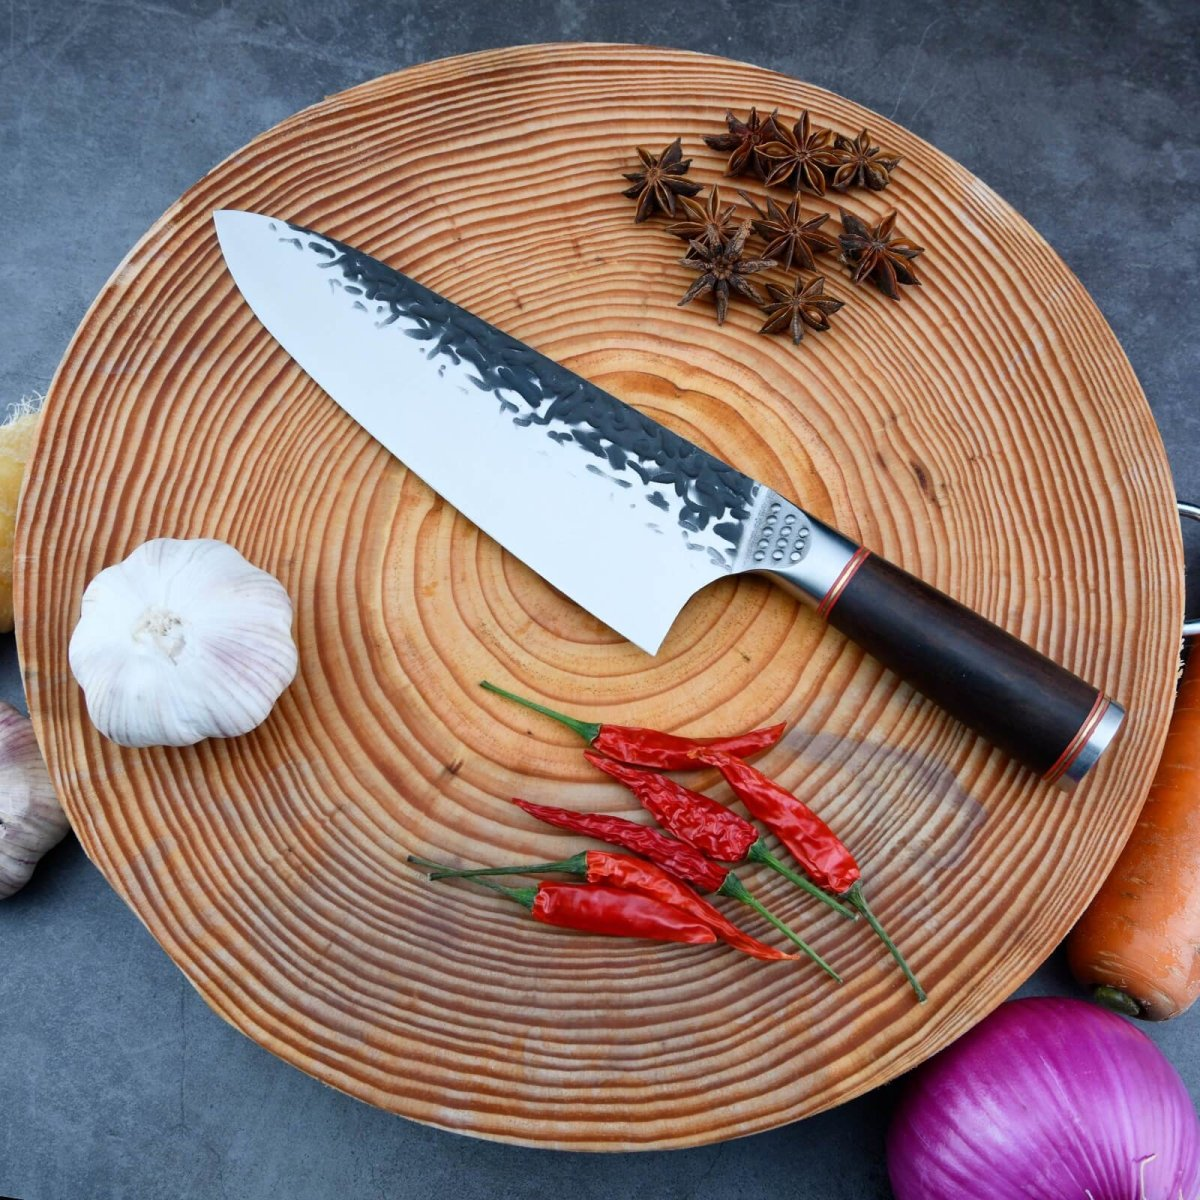 Gyuto knife - The Best Knife for Cutting Vegetables